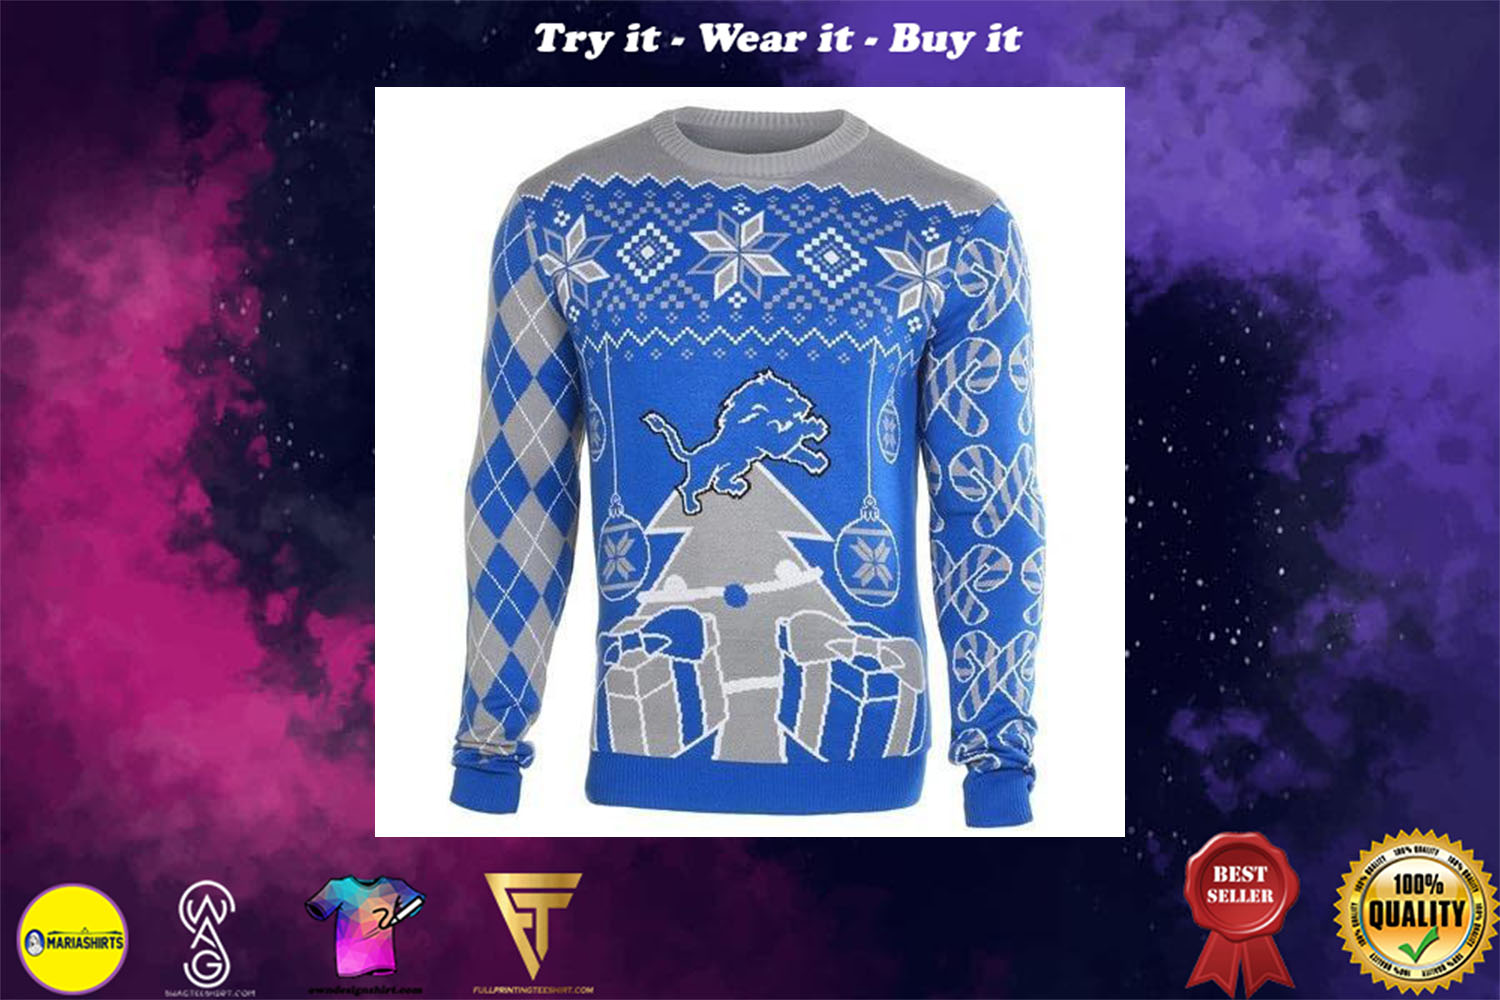 [special edition] detroit lions ugly christmas sweater - maria (Copy)